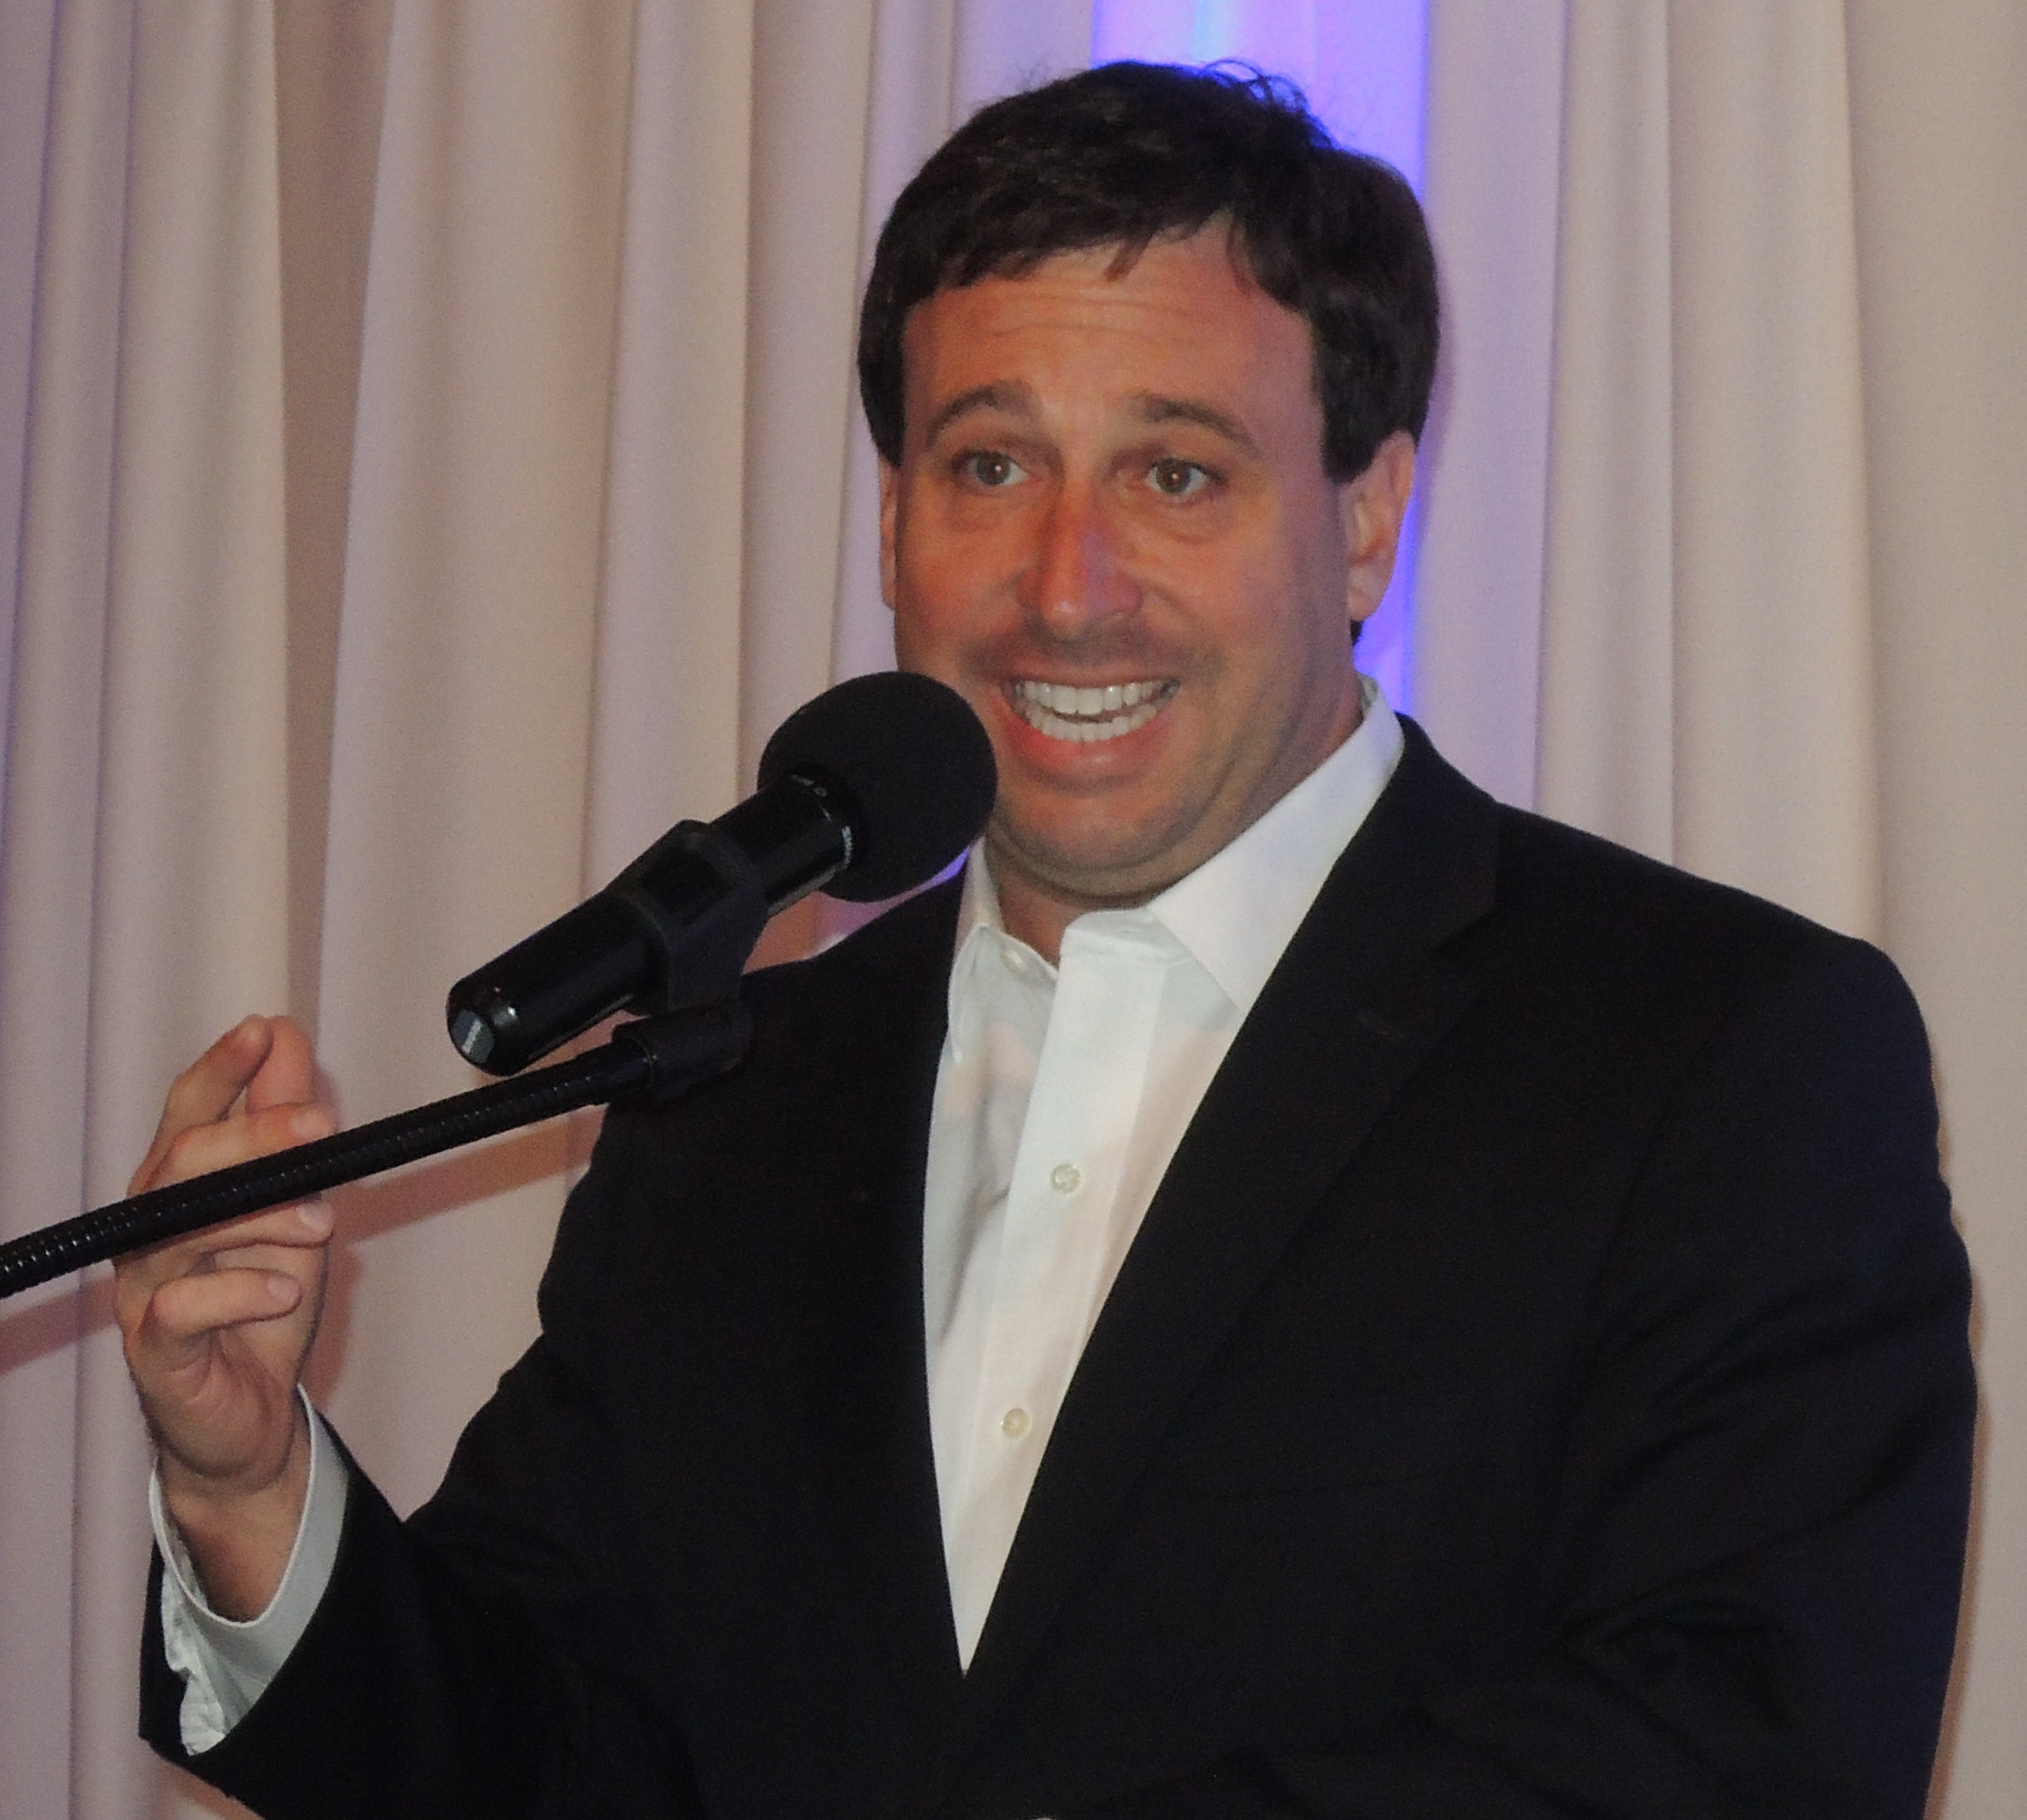 Steve Stenger's pitching a project to help address issues of poverty ...